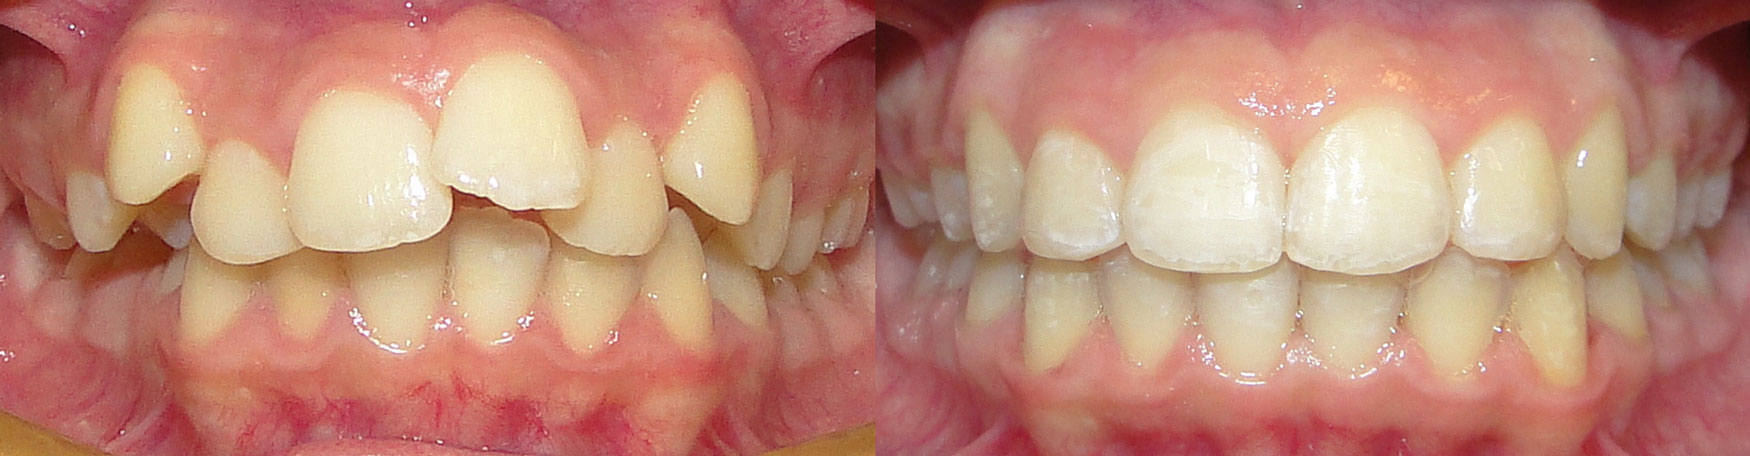 Invisalign-Before-After-3.jpg